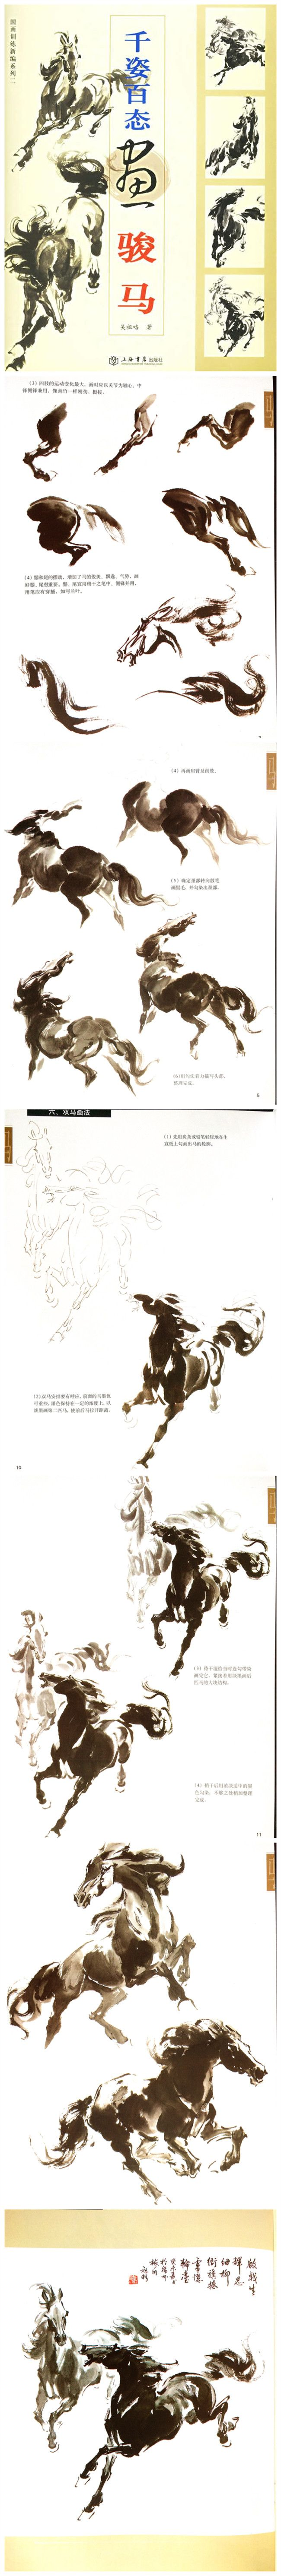 HH091 Sumi-e Painting Book- Horse [HH091] - $11.94 : hmay rice paper manufacturer for calligraphy, brush painting&Chinese painting